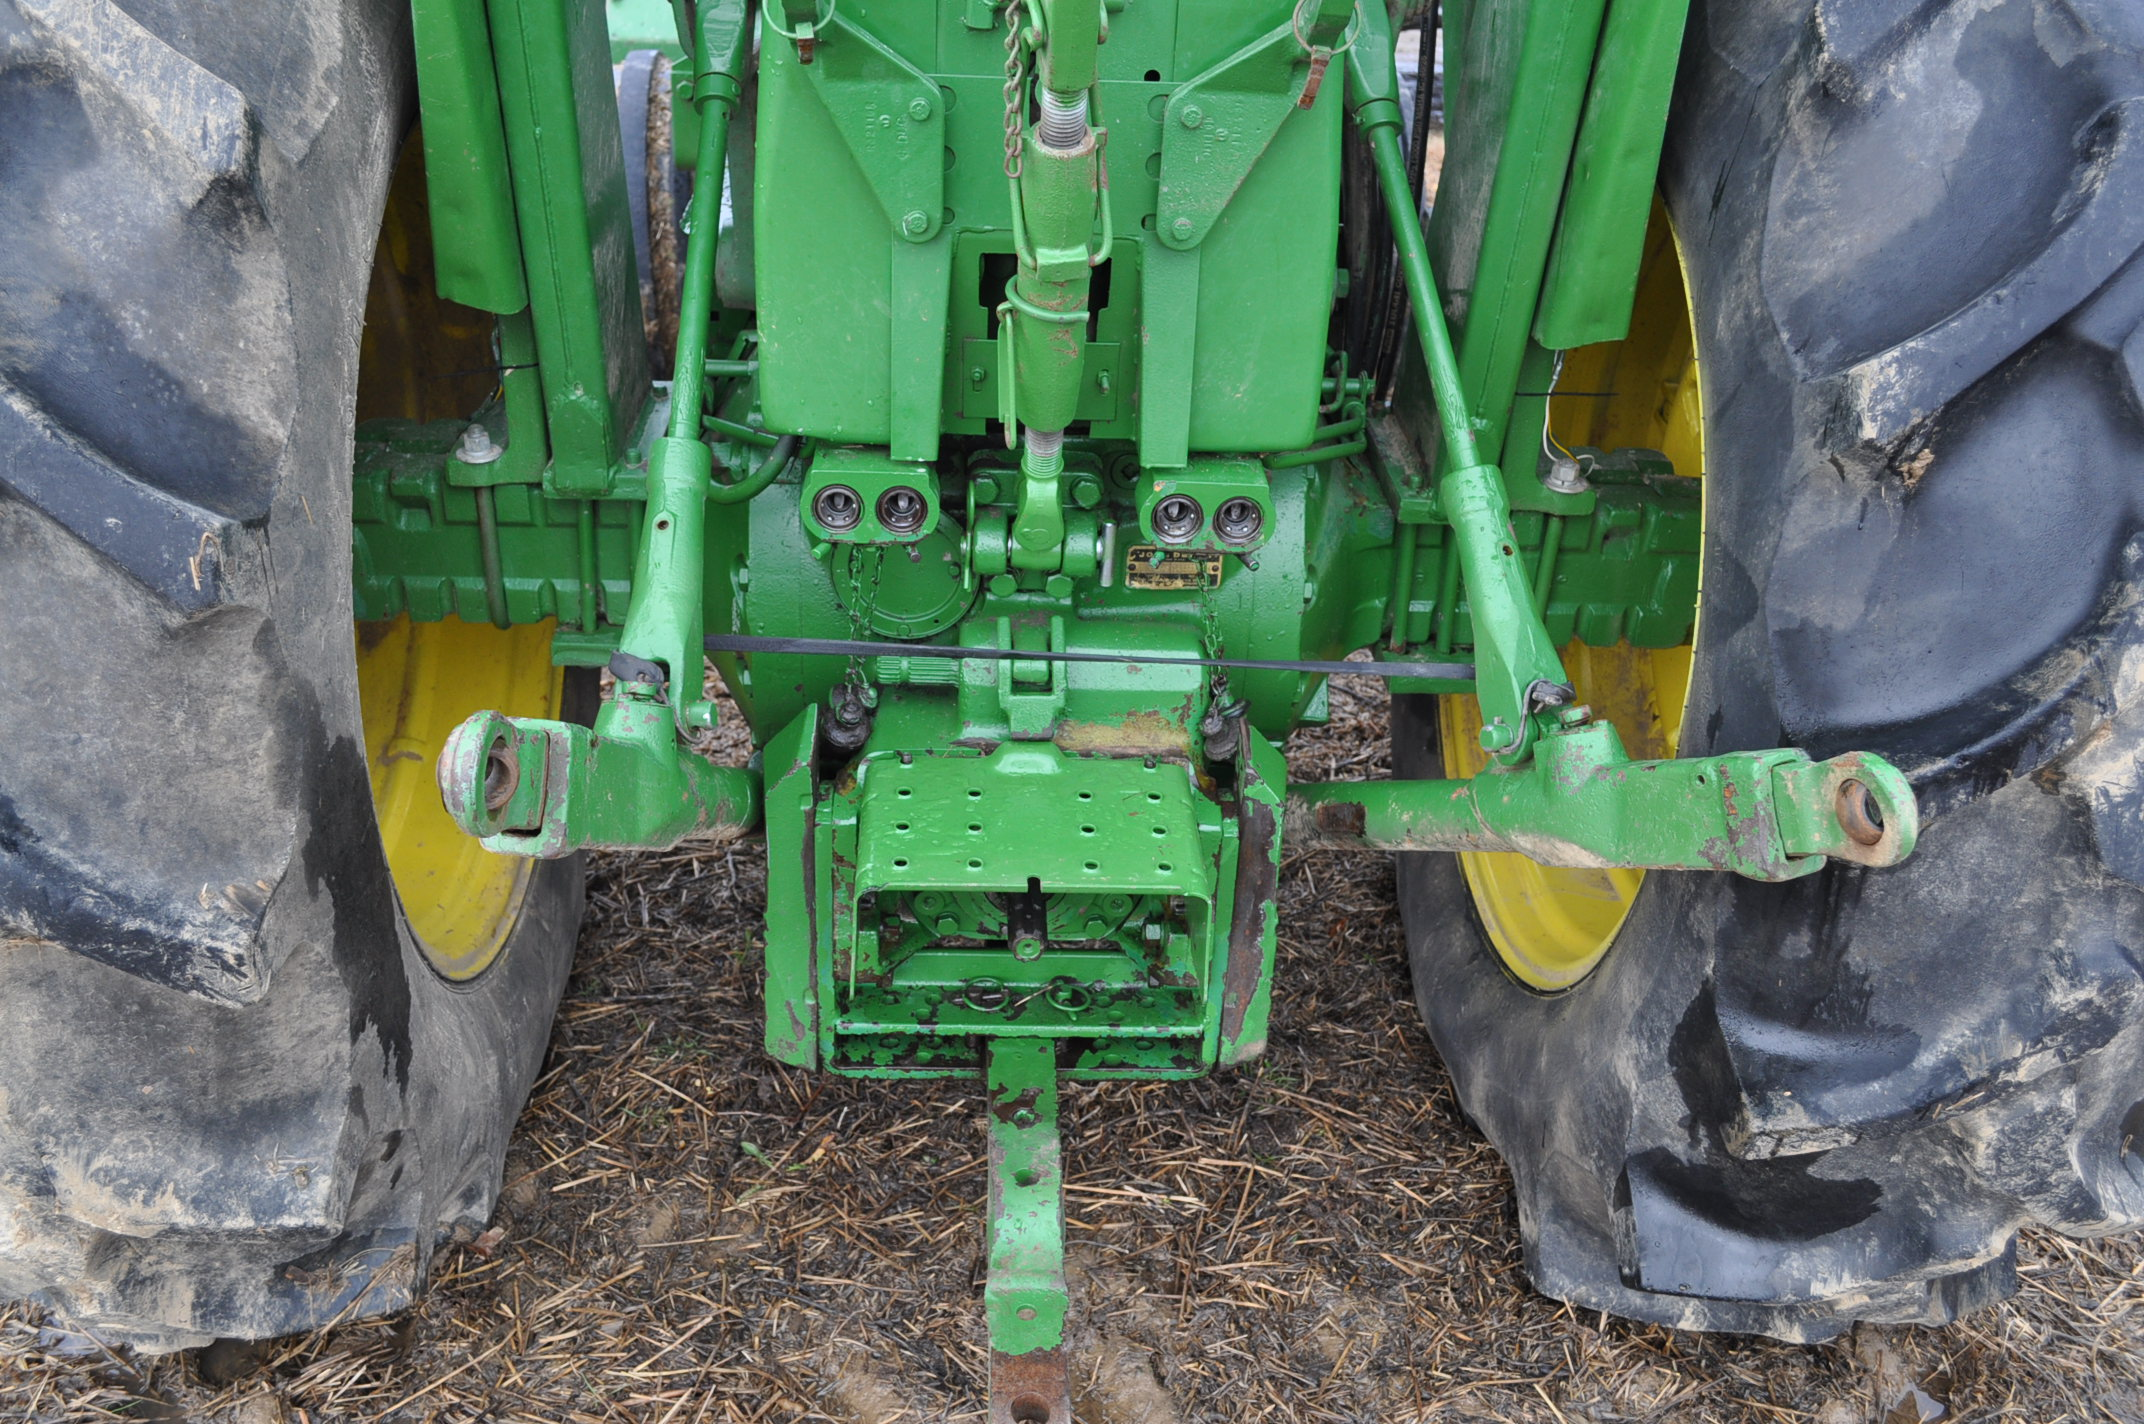 John Deere 4020 tractor, diesel, 18.4-34 tires w/ clamp on dual rims, 11L-15 front, ROPS w/ - Image 15 of 22